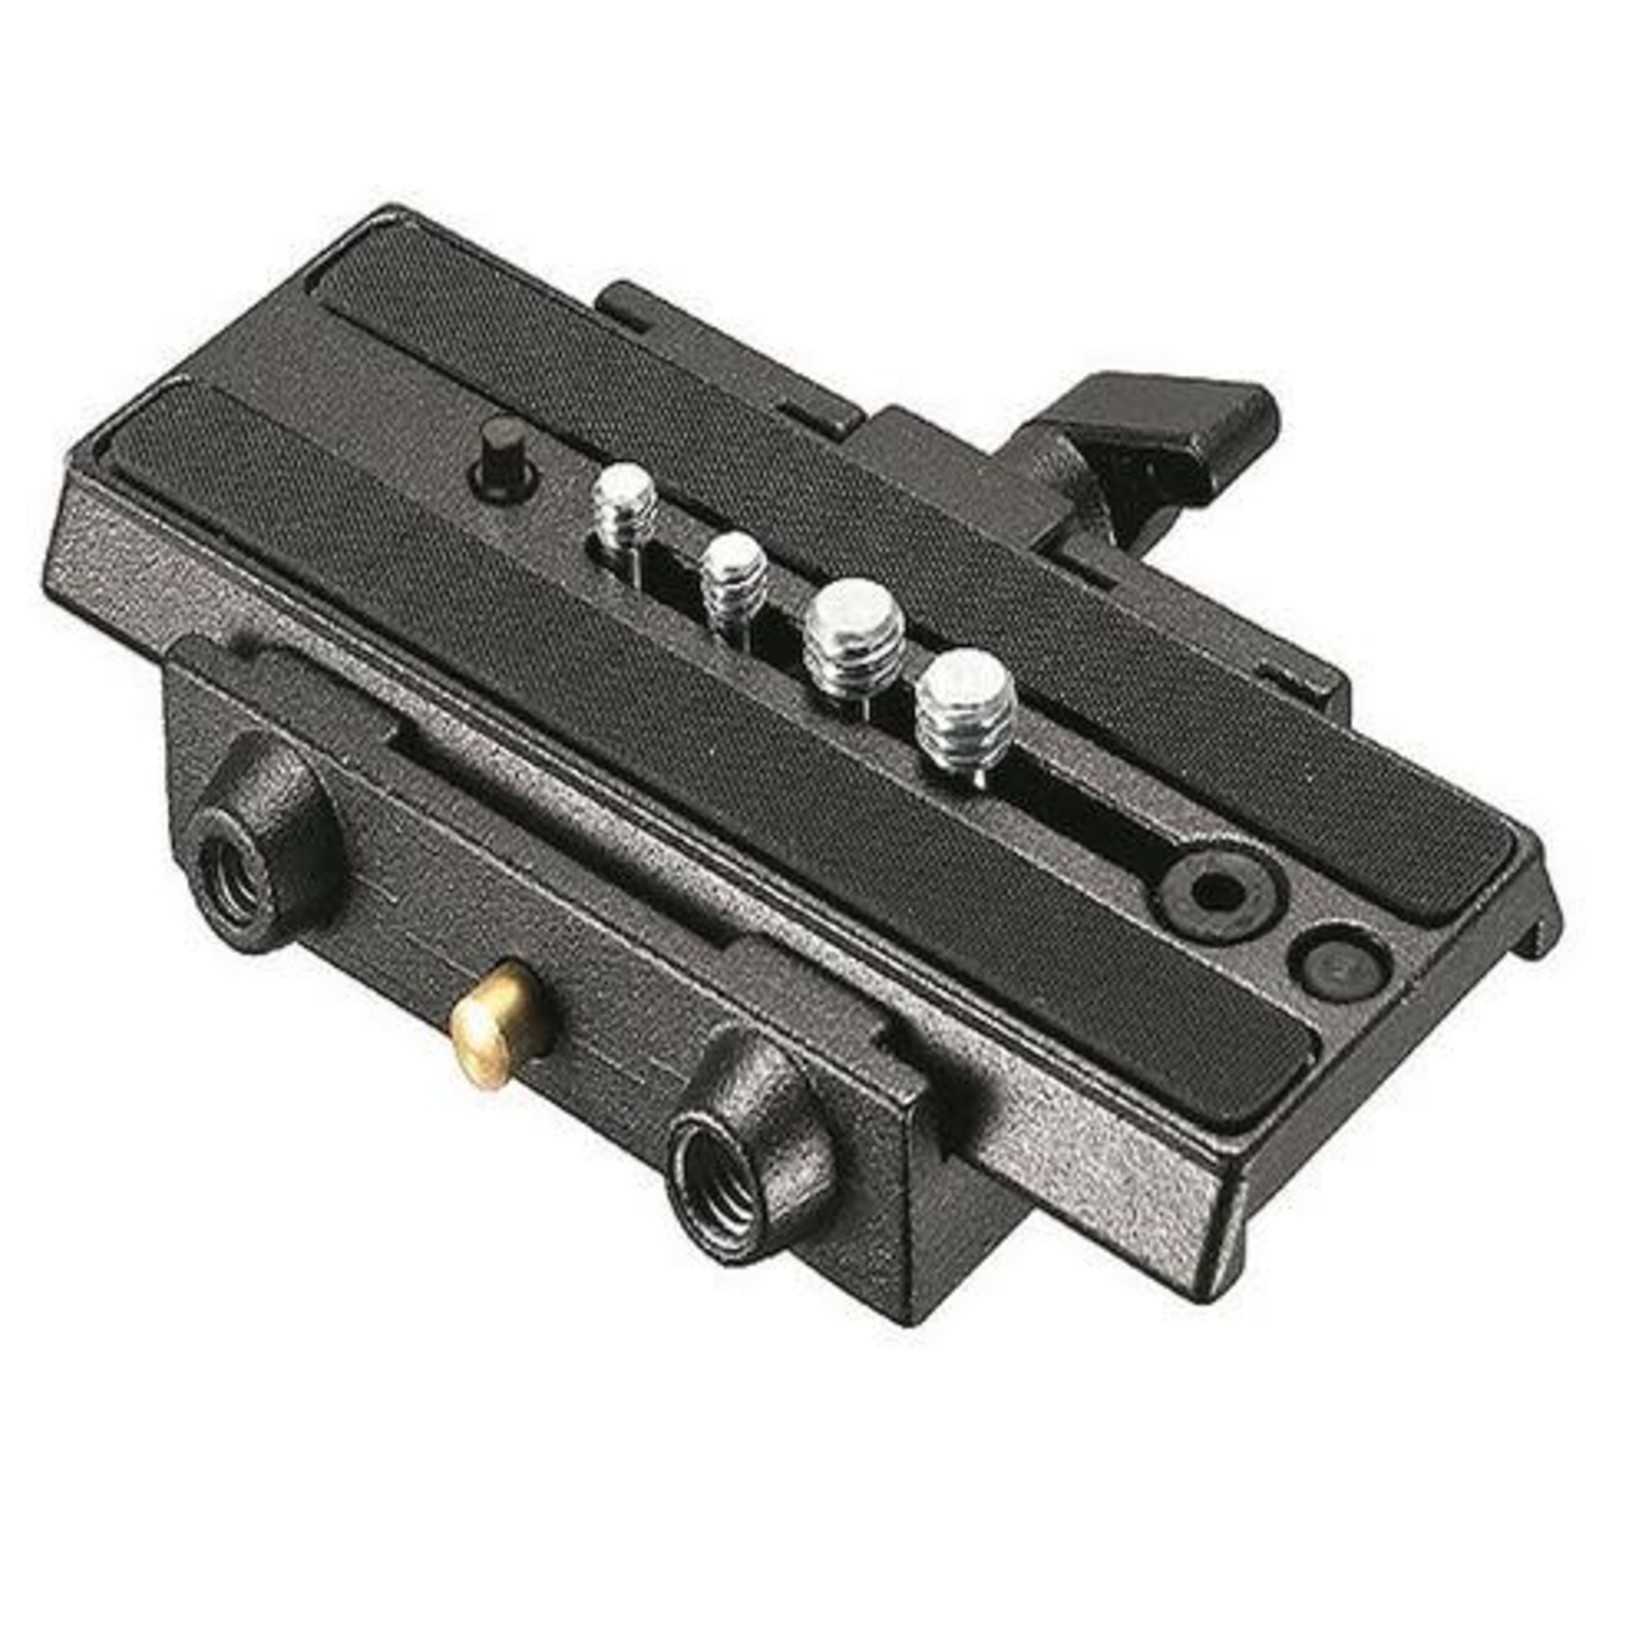 Manfrotto Manfrotto 357-1 Rapid Connect Adapter with 357PLV-1 Camera Plate